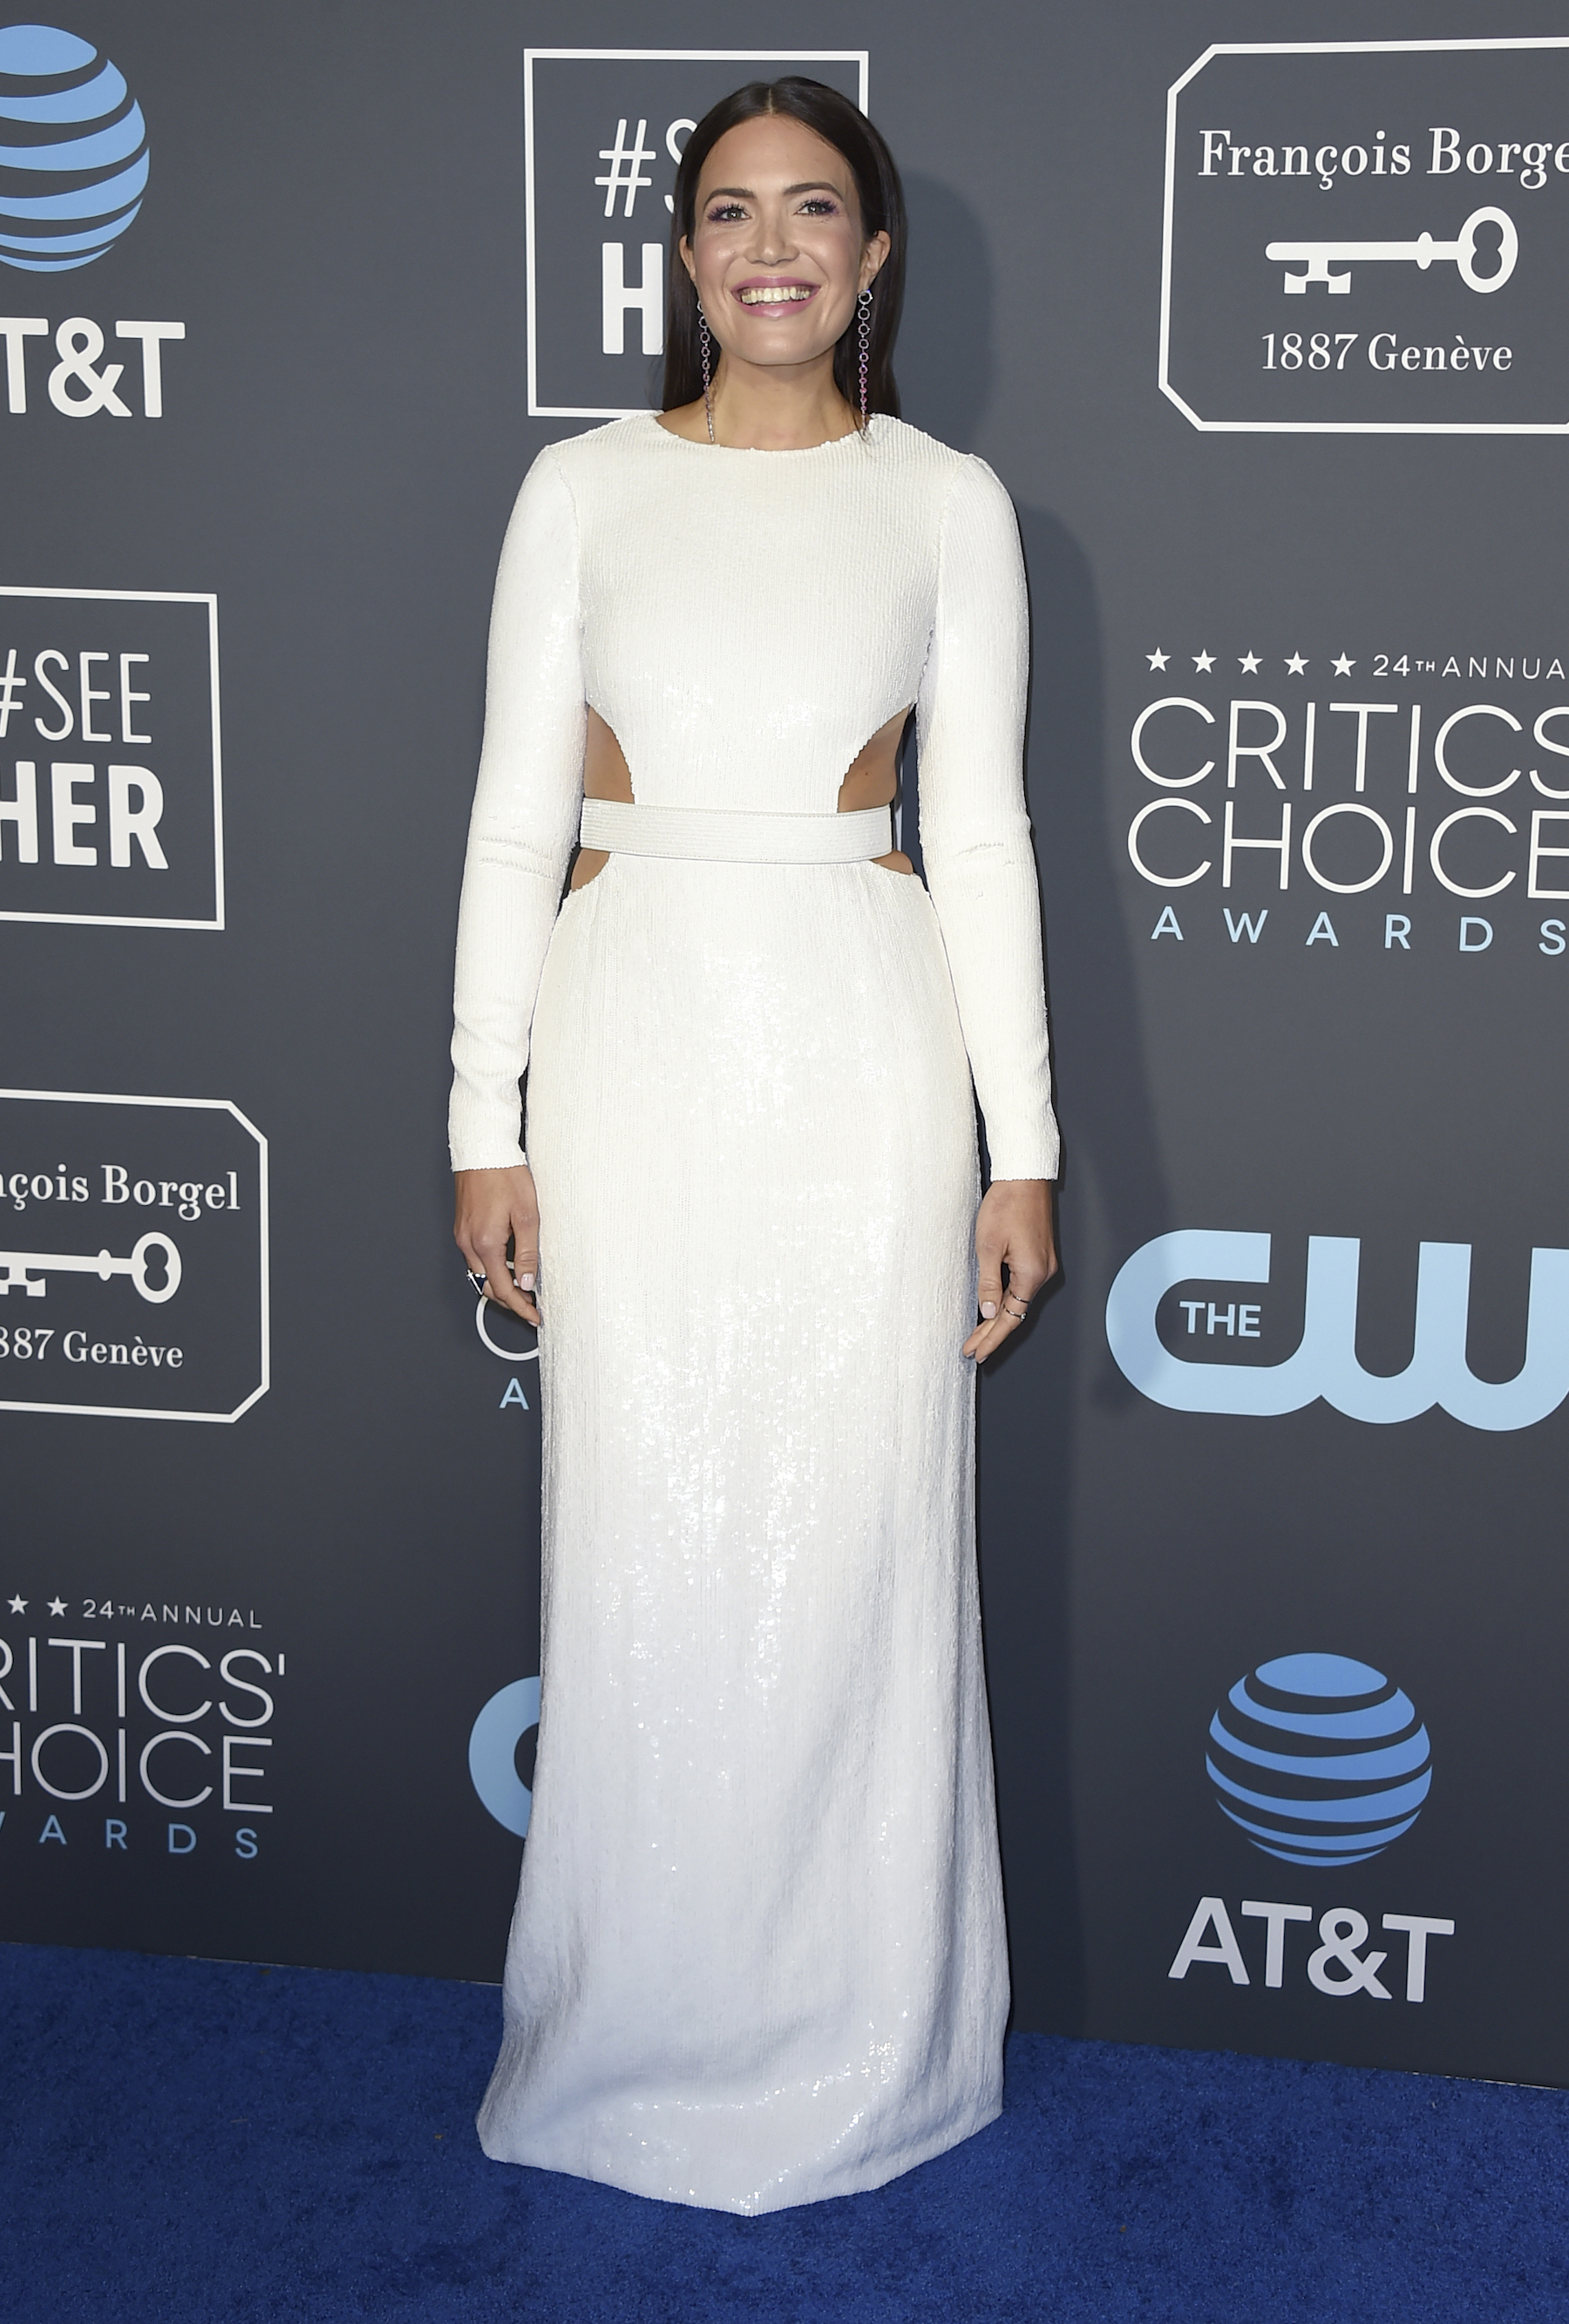 <div class='meta'><div class='origin-logo' data-origin='AP'></div><span class='caption-text' data-credit='Jordan Strauss/Invision/AP'>Mandy Moore arrives at the 24th annual Critics' Choice Awards on Sunday, Jan. 13, 2019, at the Barker Hangar in Santa Monica, Calif.</span></div>